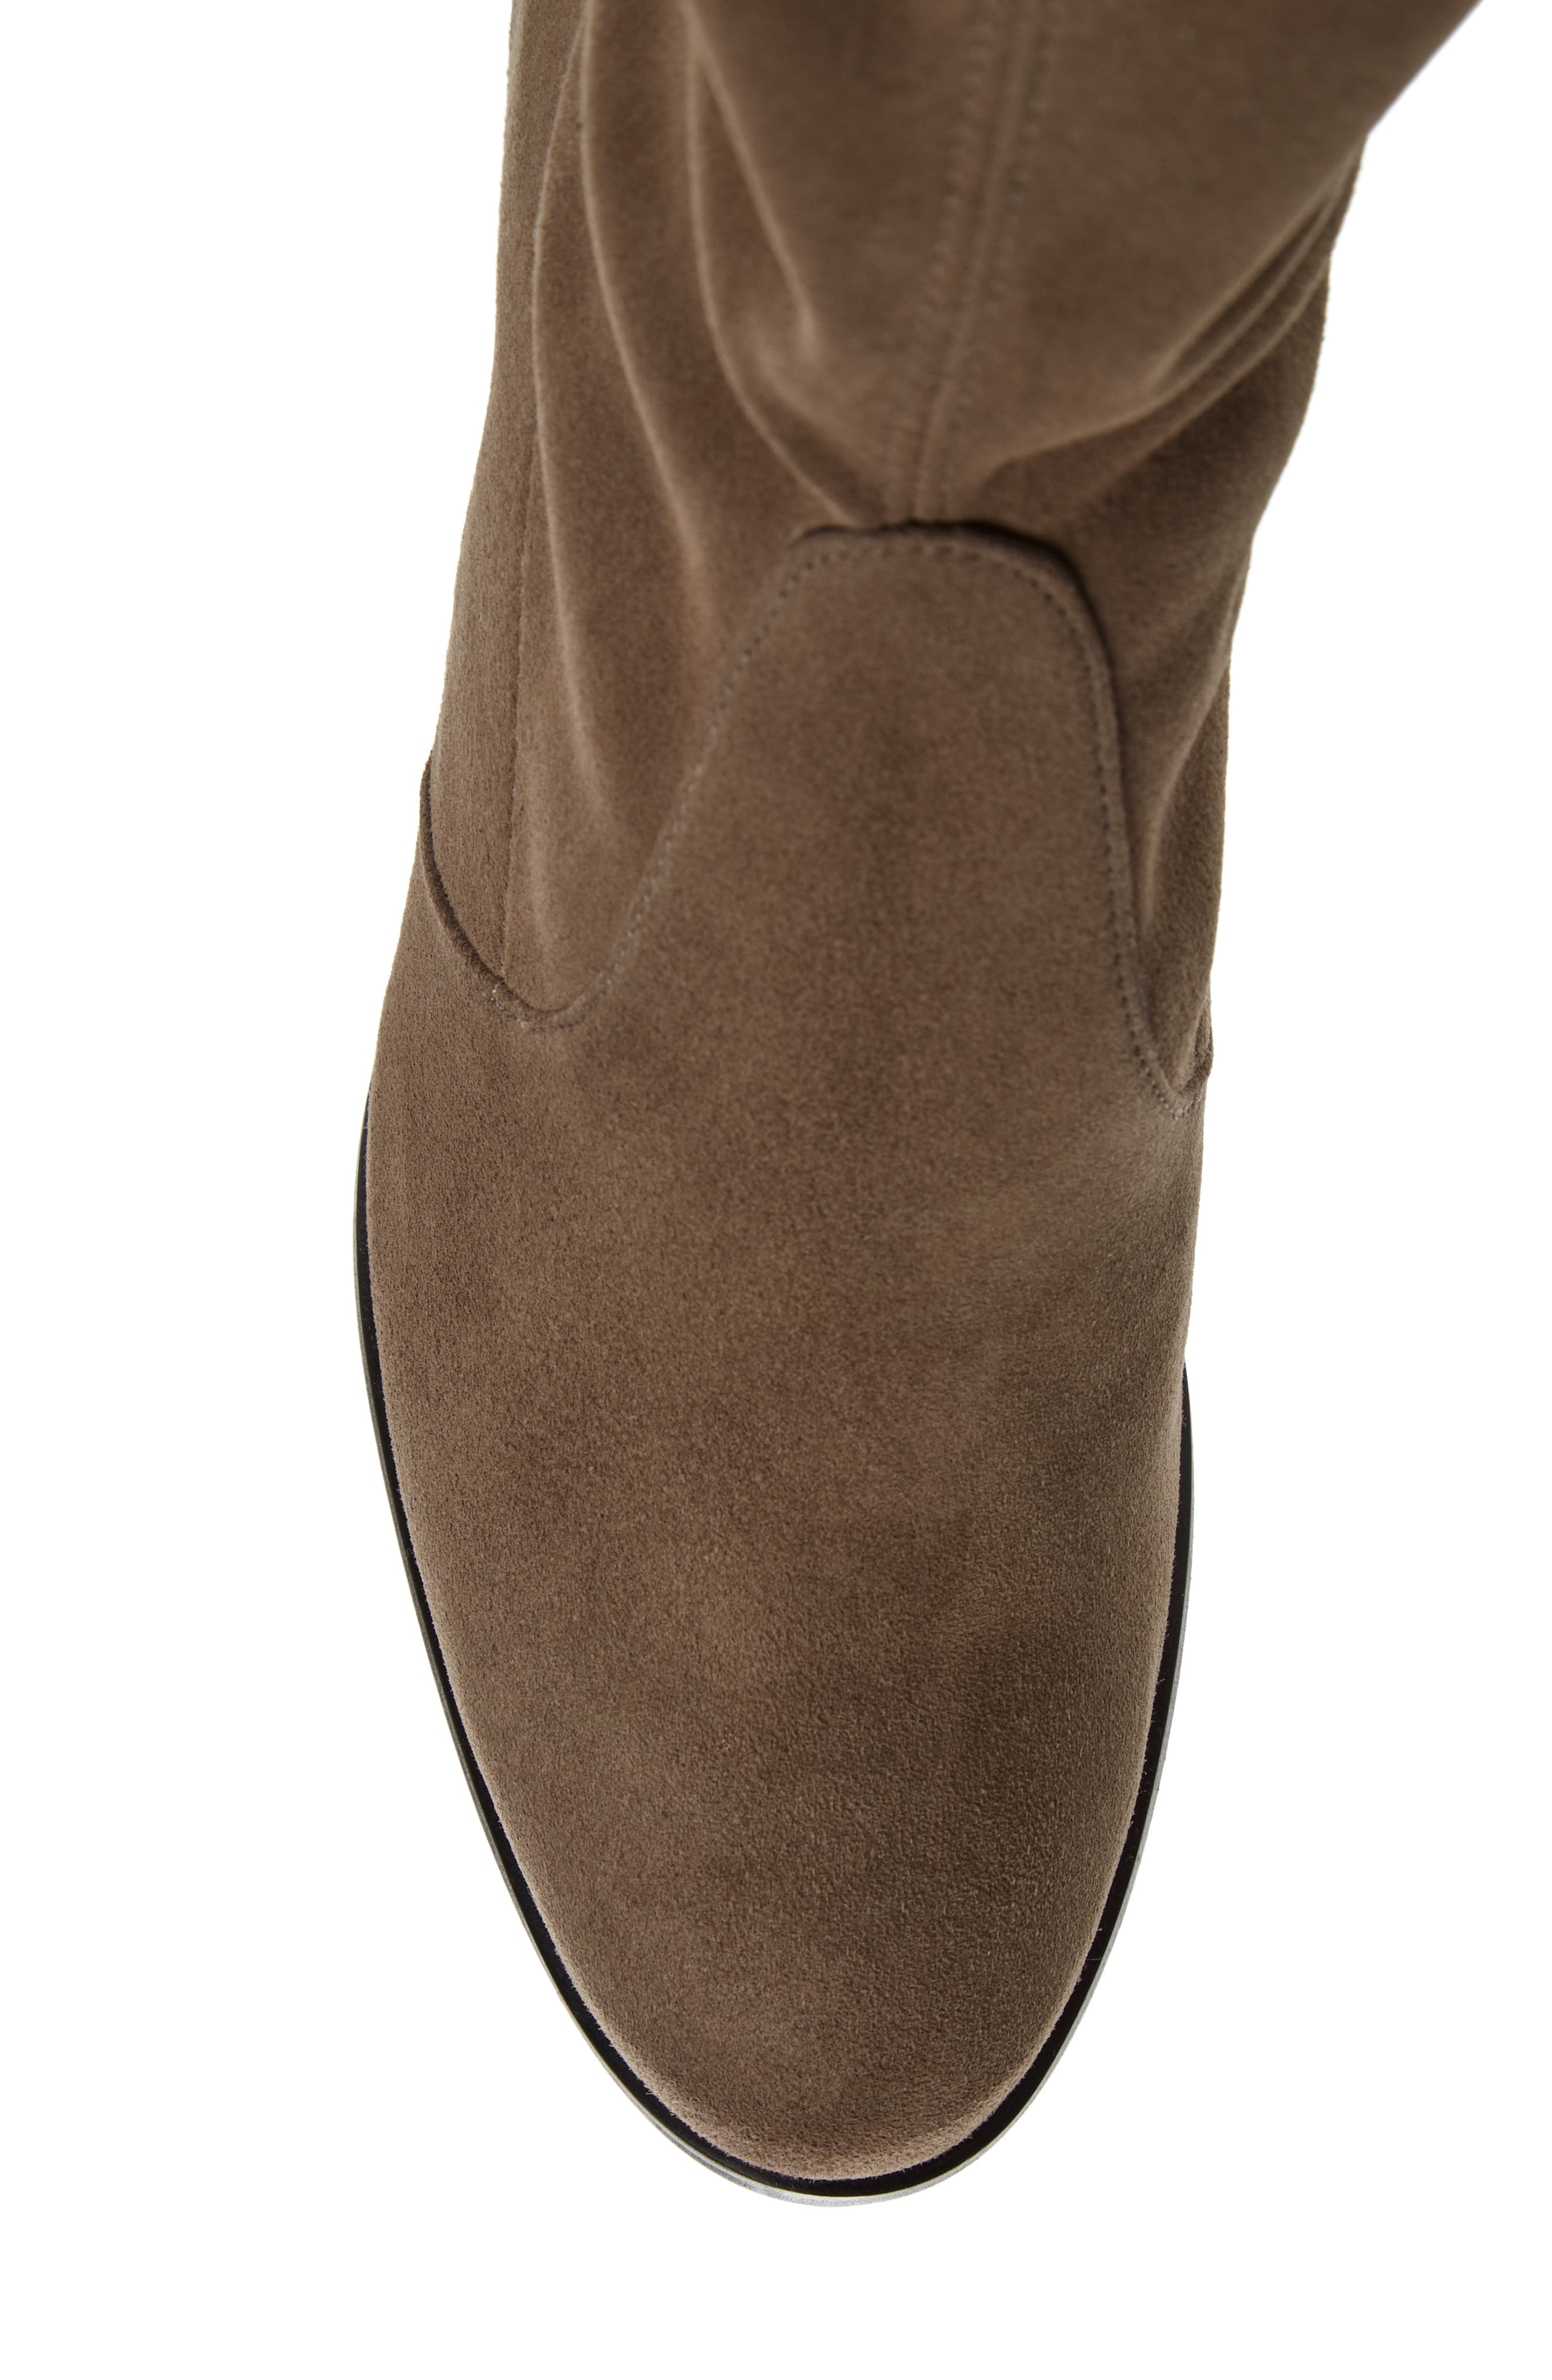 Tieland Over the Knee Boot,                             Alternate thumbnail 4, color,                             Praline Suede